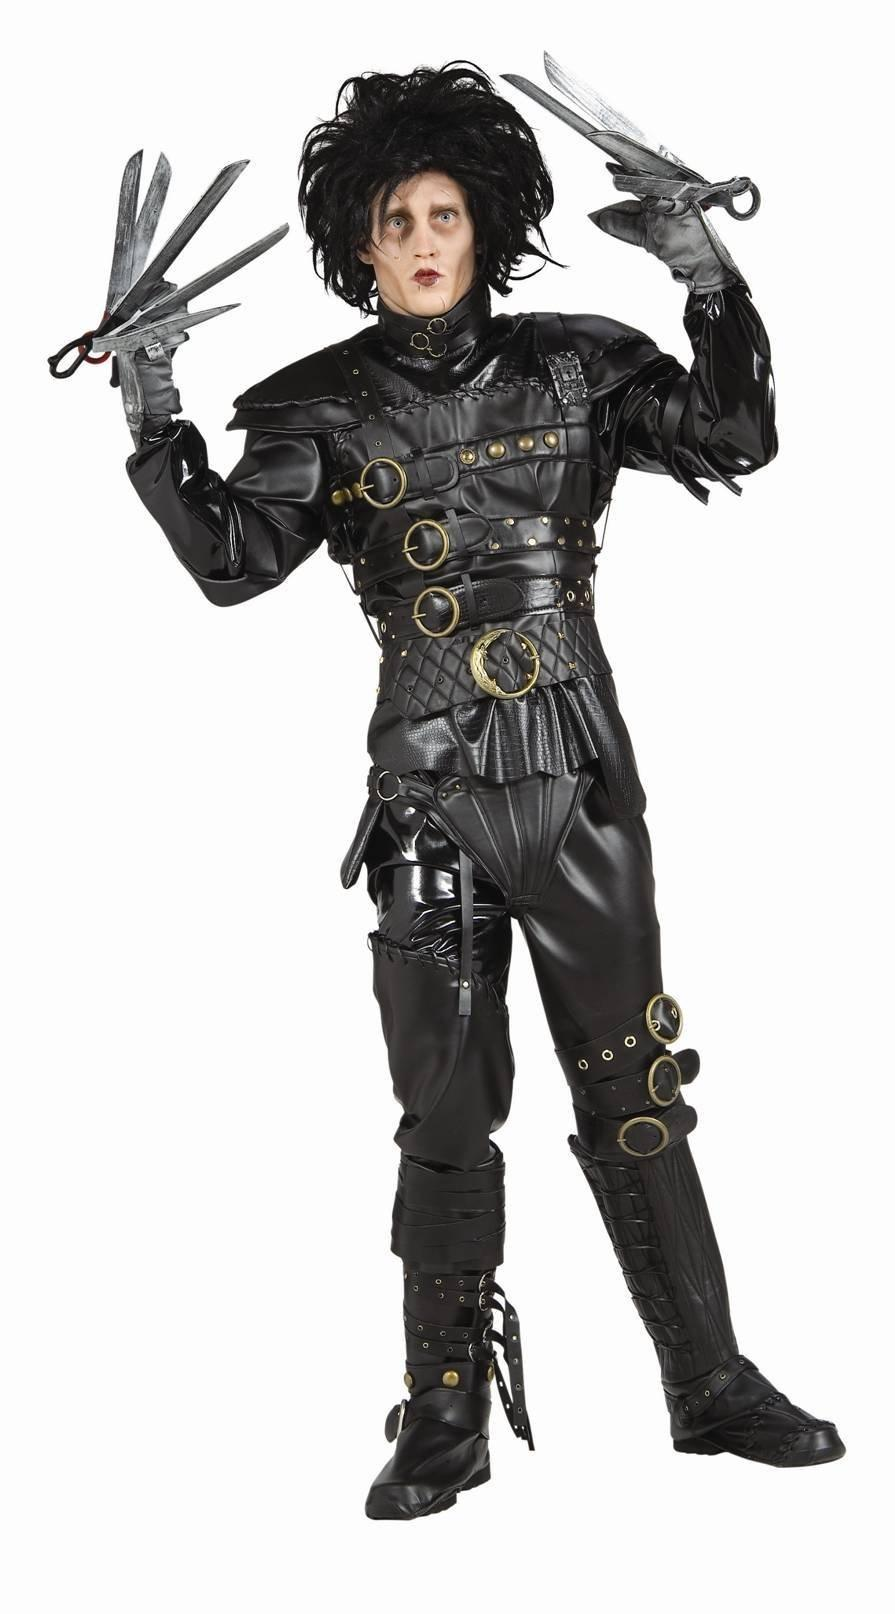 Deluxe Edward Scissorhands Costume